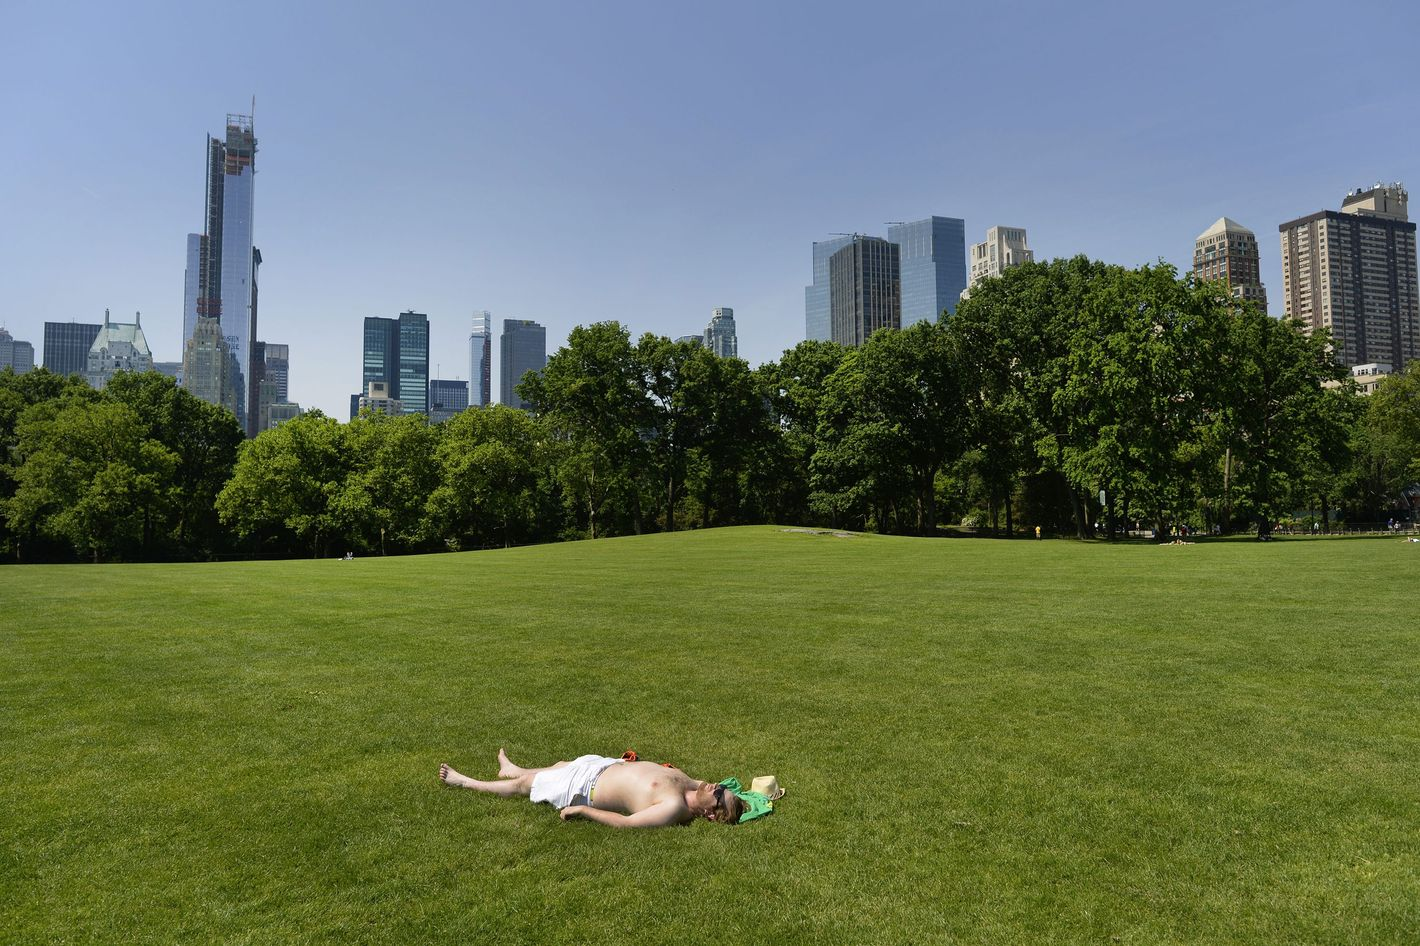 NYC weather: Record high temperatures recorded in Central Park